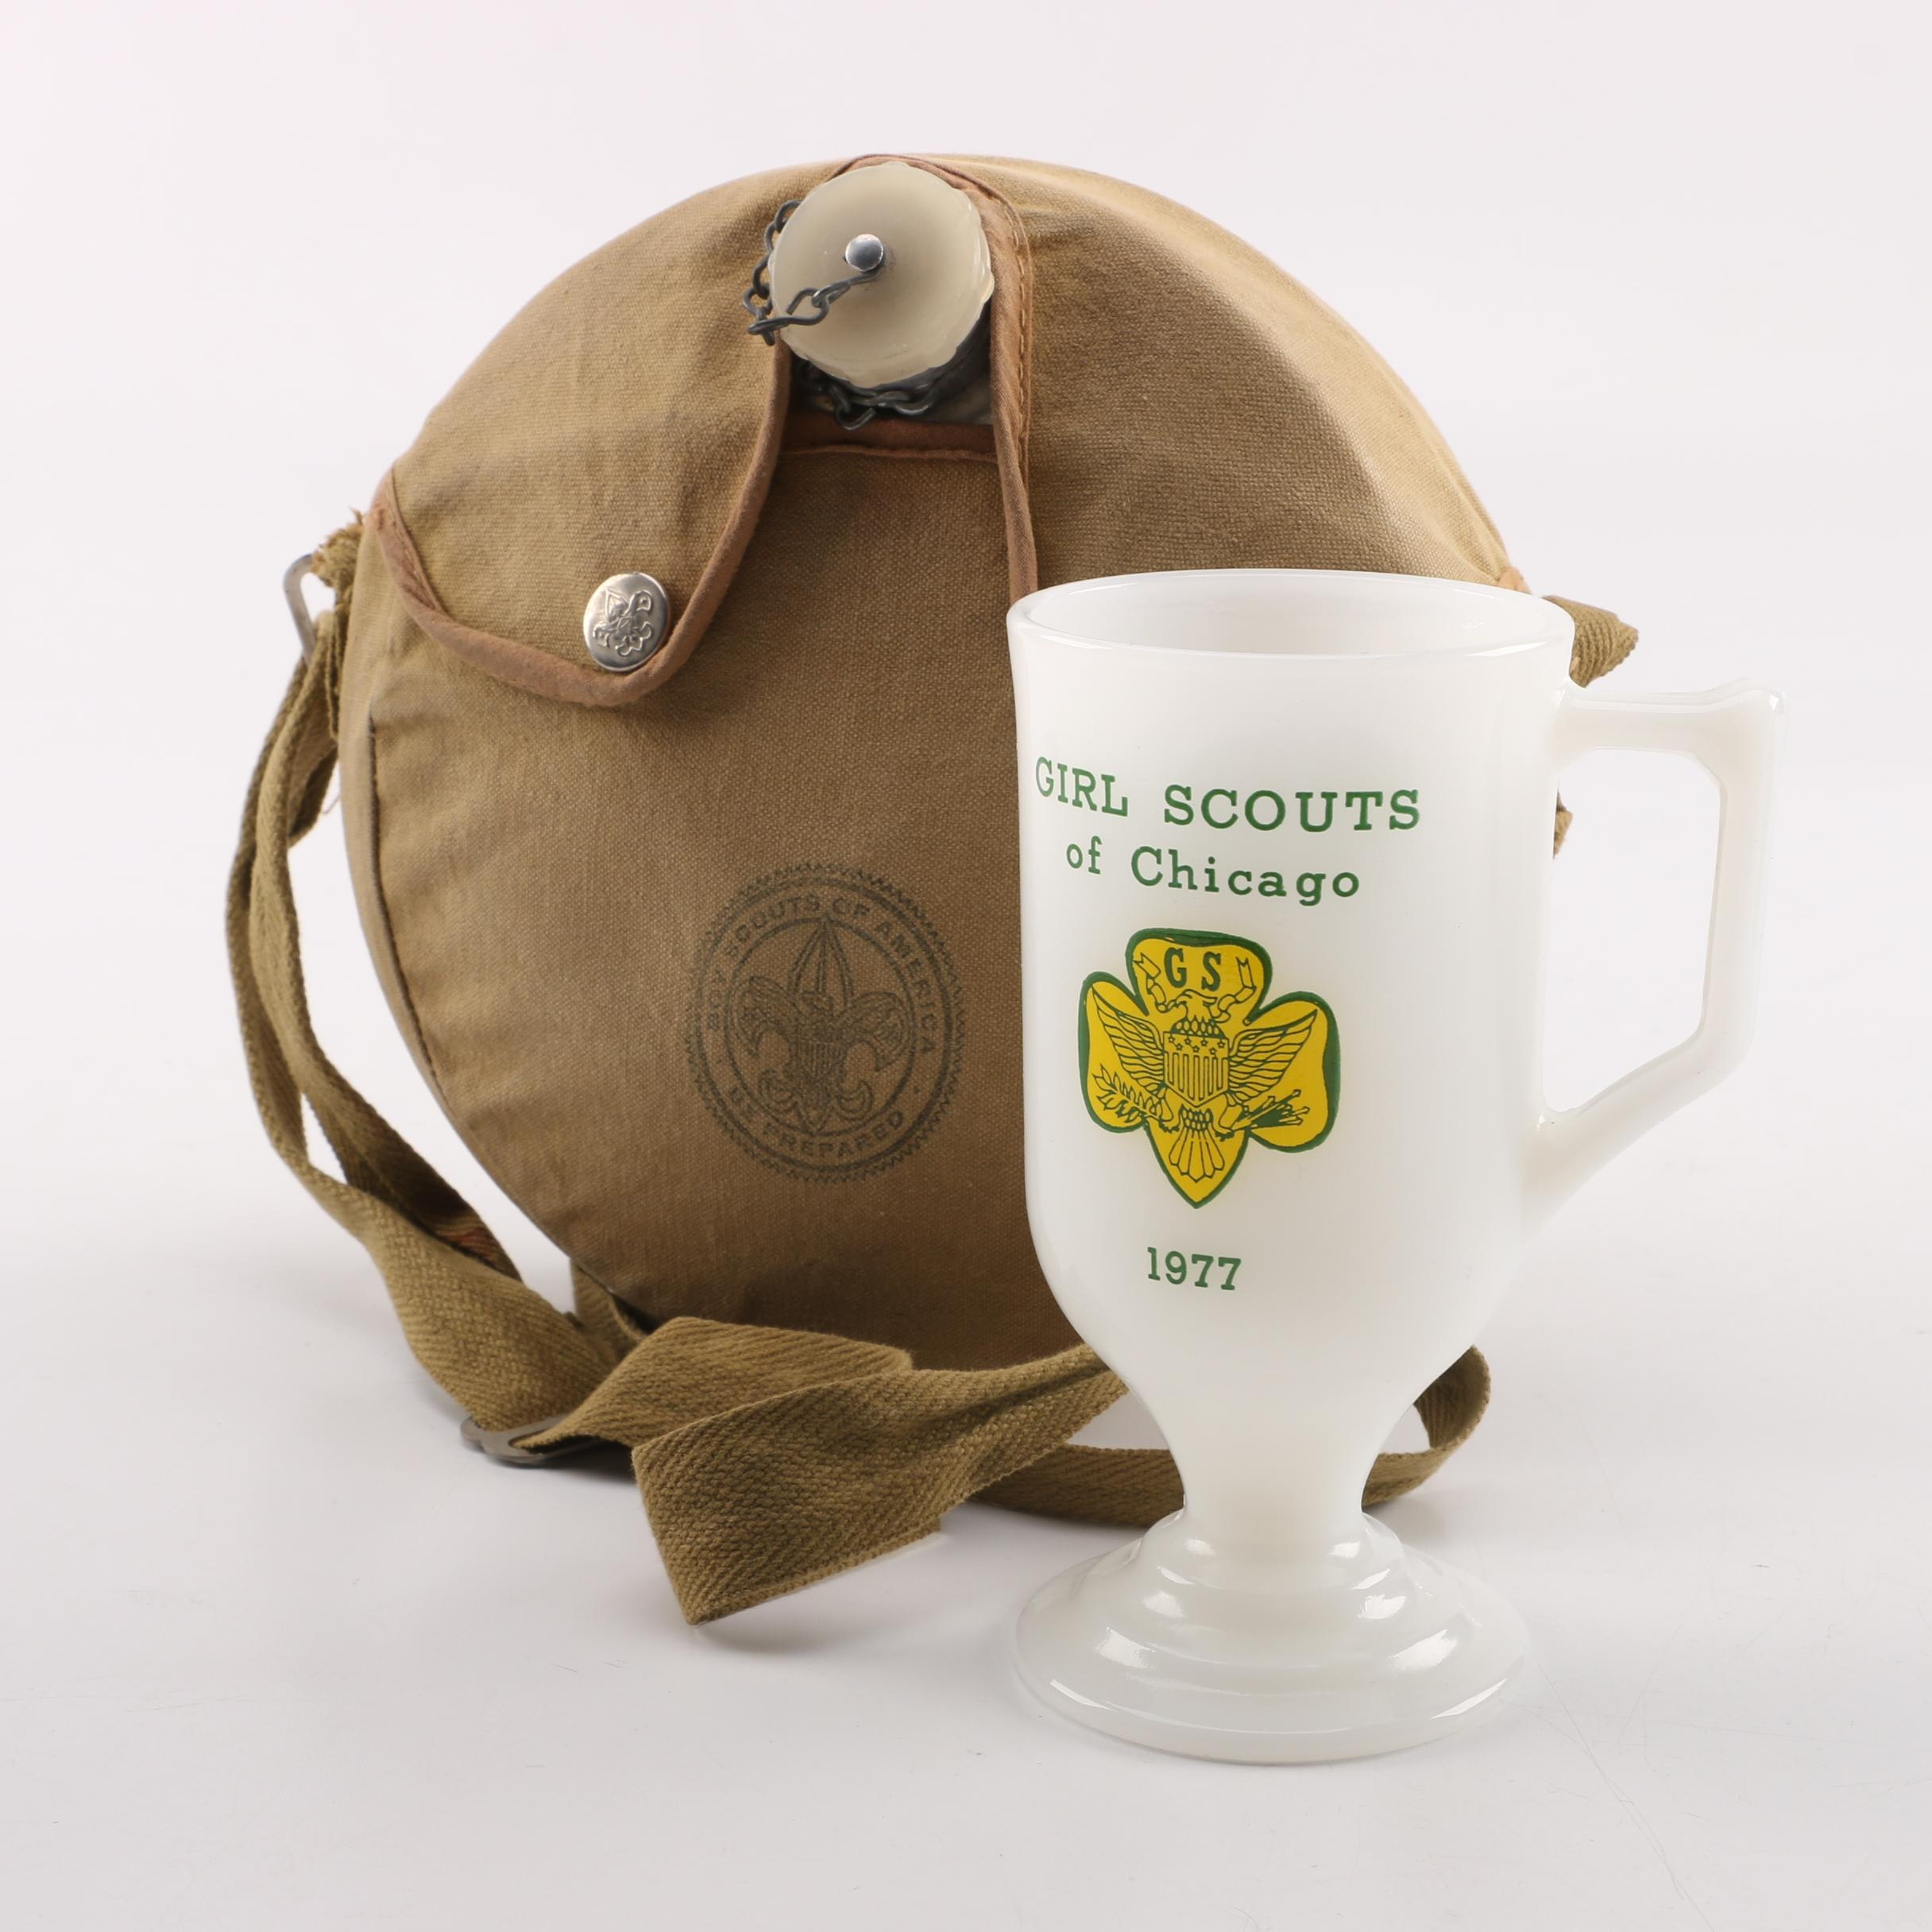 Vintage Boy Scouts Canteen and Girl Scouts Cup